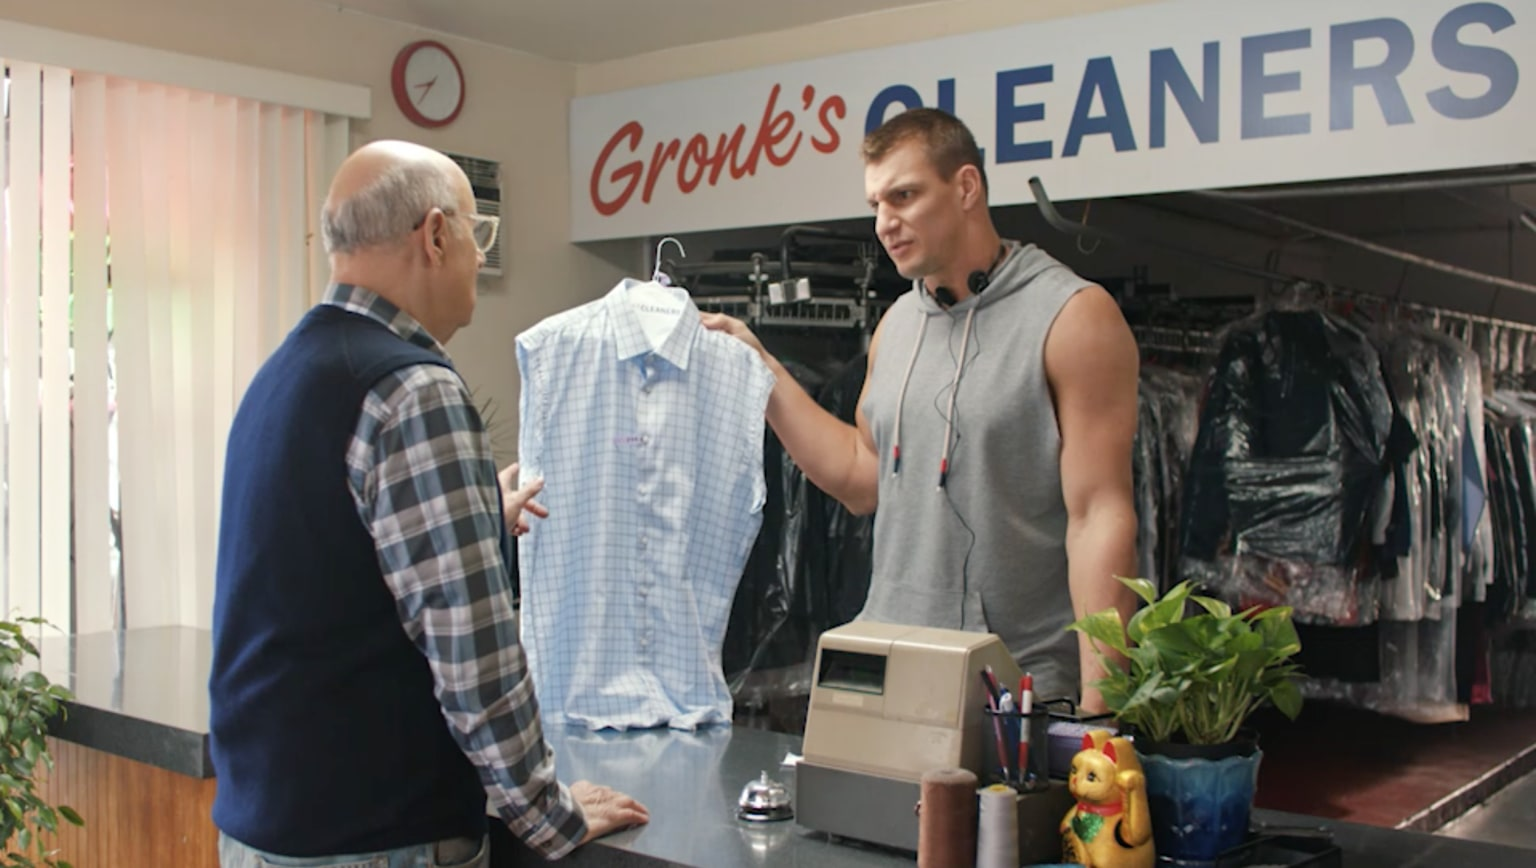 Tide | Gronk's Cleaners